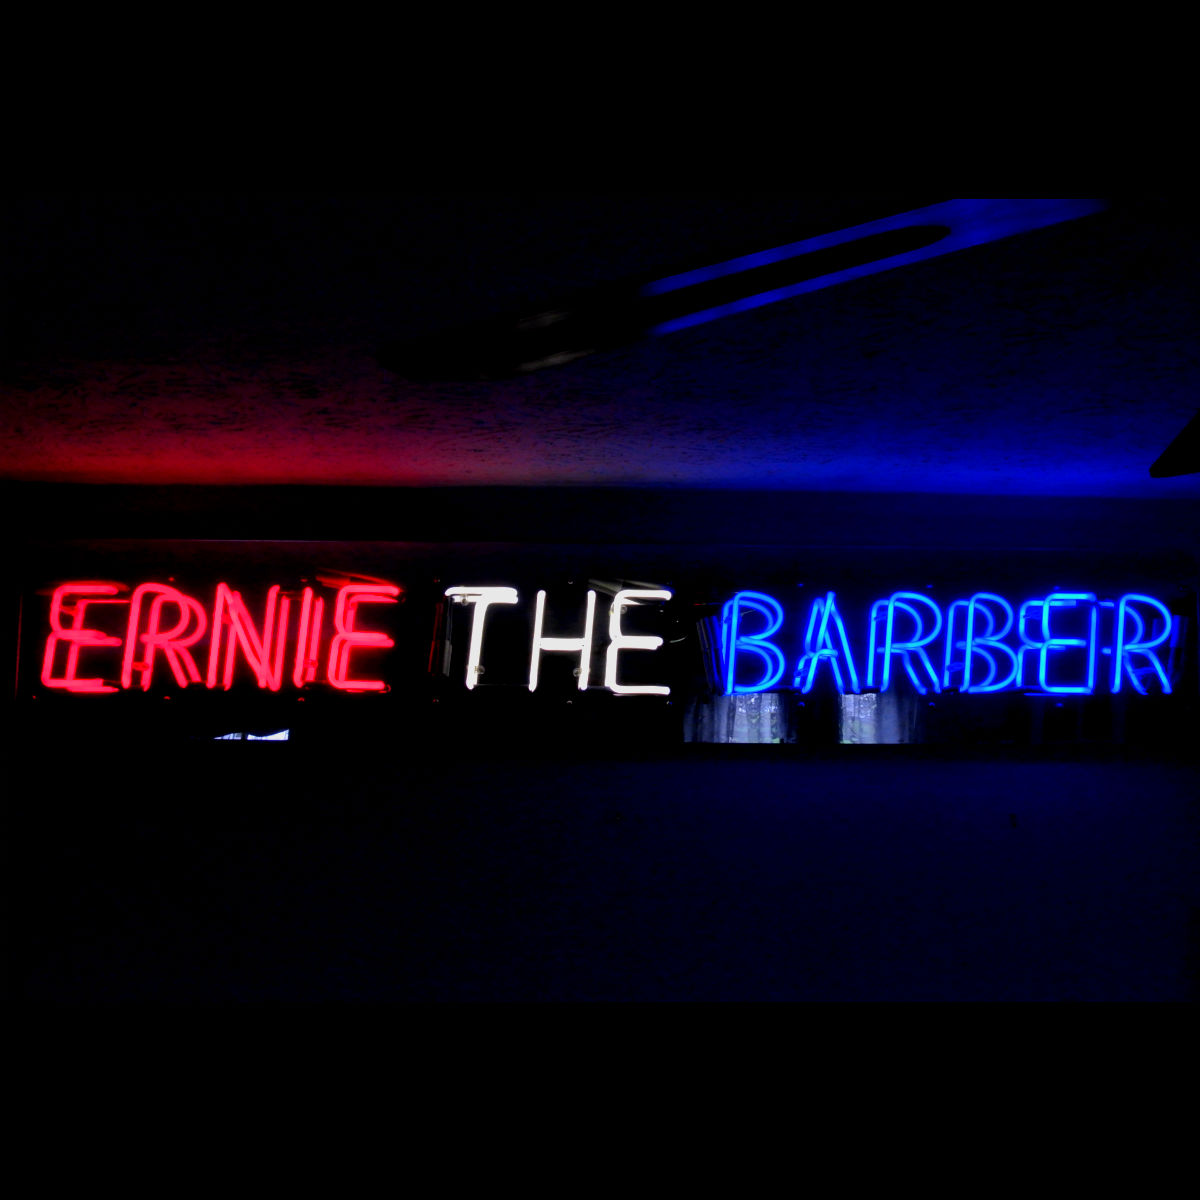 BARBER SHOP CUSTOM NEON SIGNS by John Barton - BartonNeonMagic.com